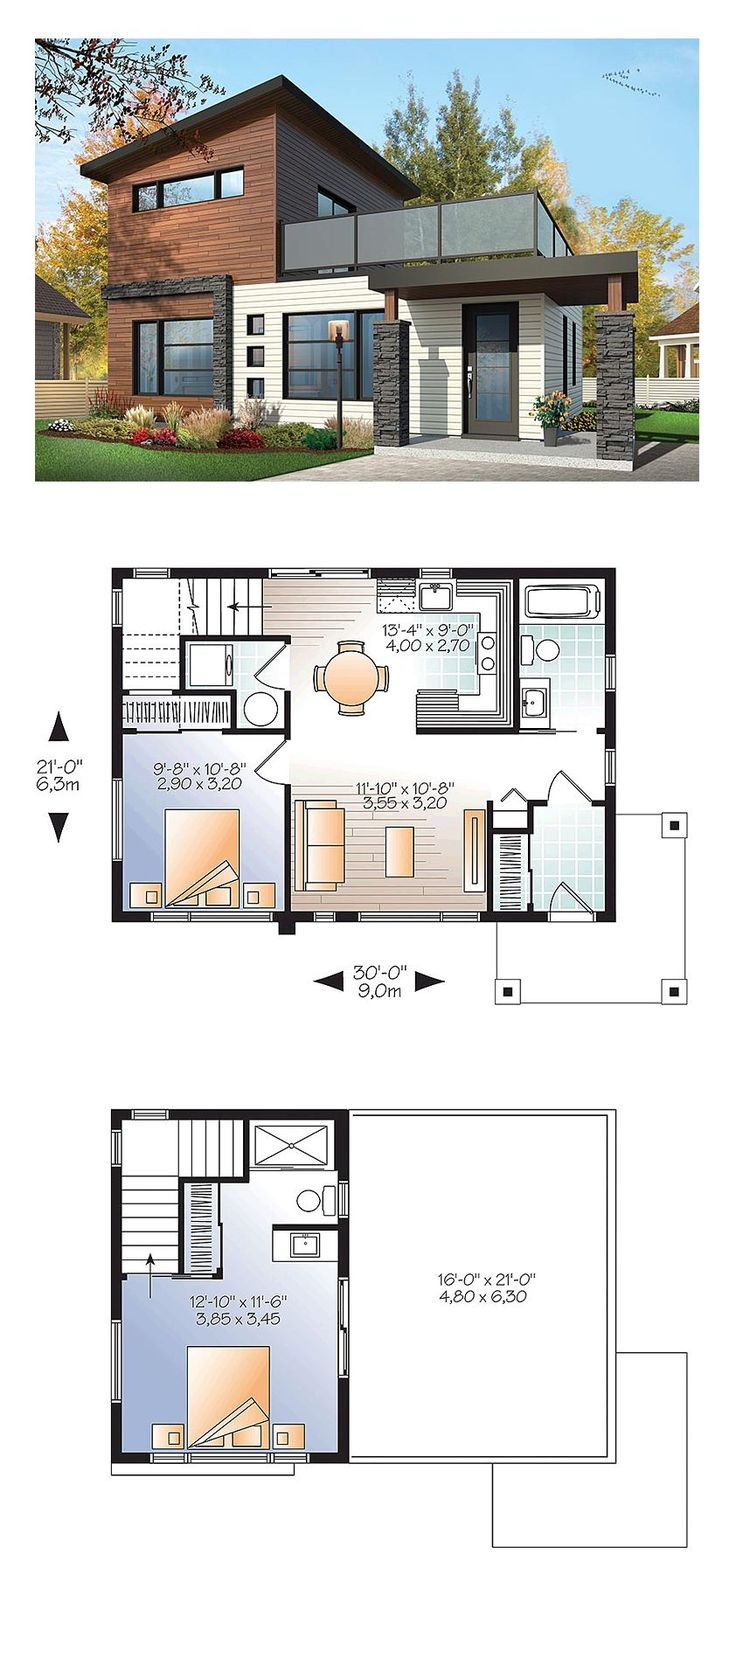 House design plan - Modern House Plan 76461 Total Living Area 924 Sq Ft 2